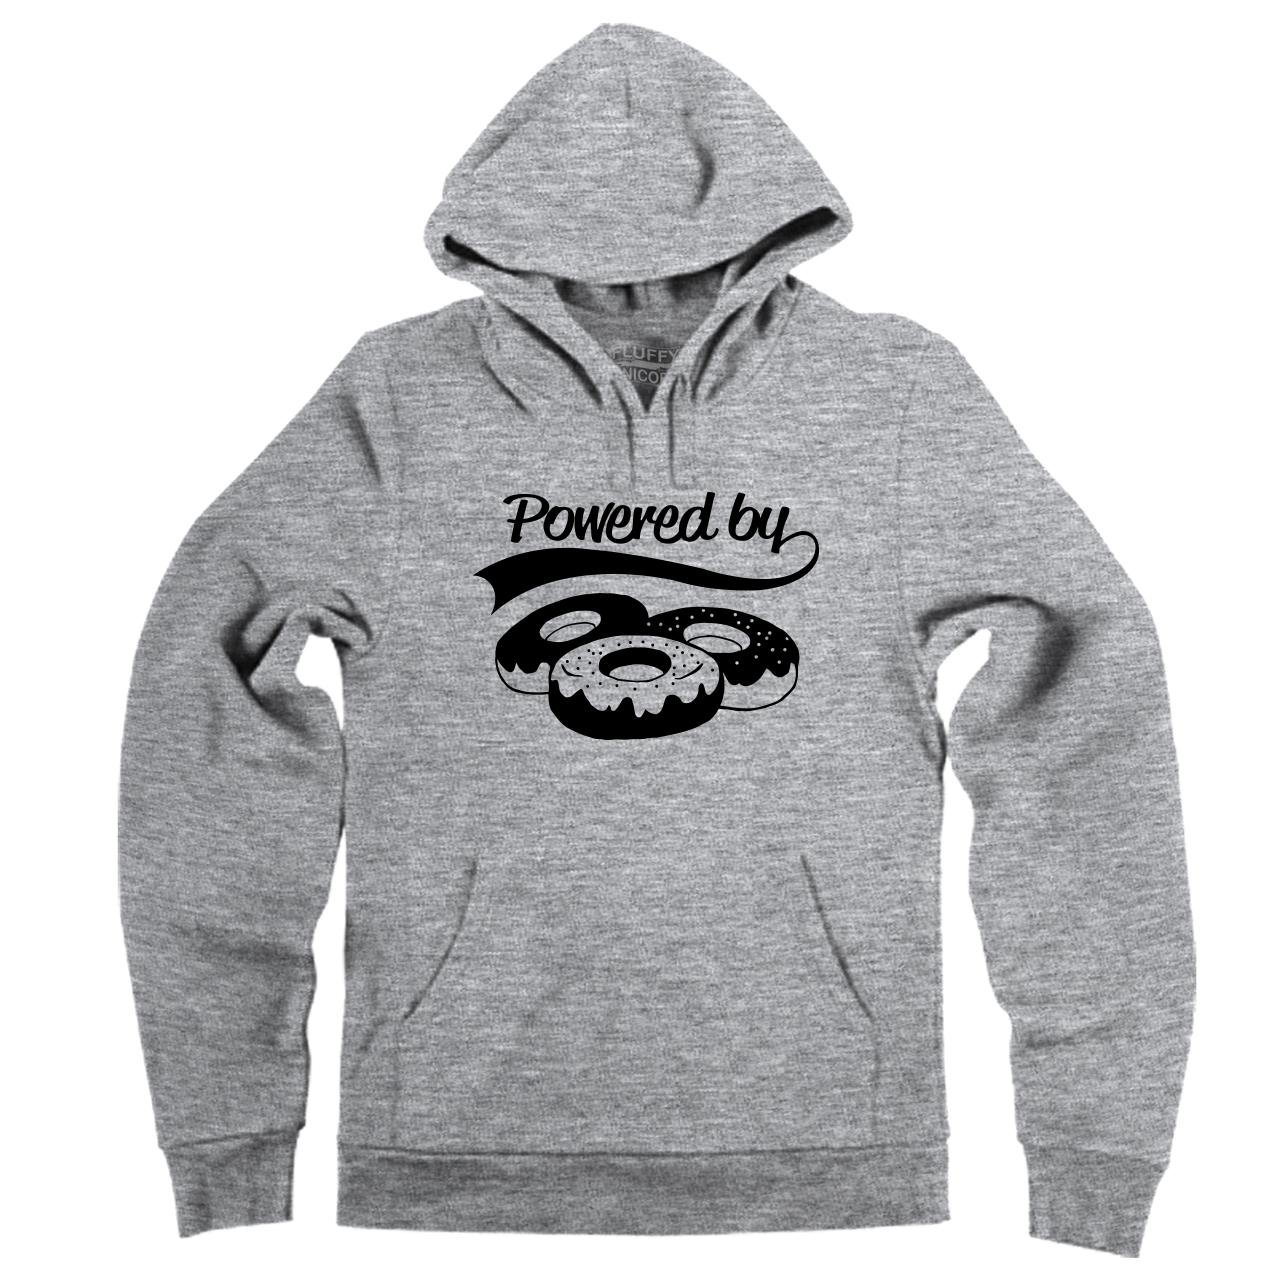 Comical Shirt Mens Powered by Donuts Hoodie